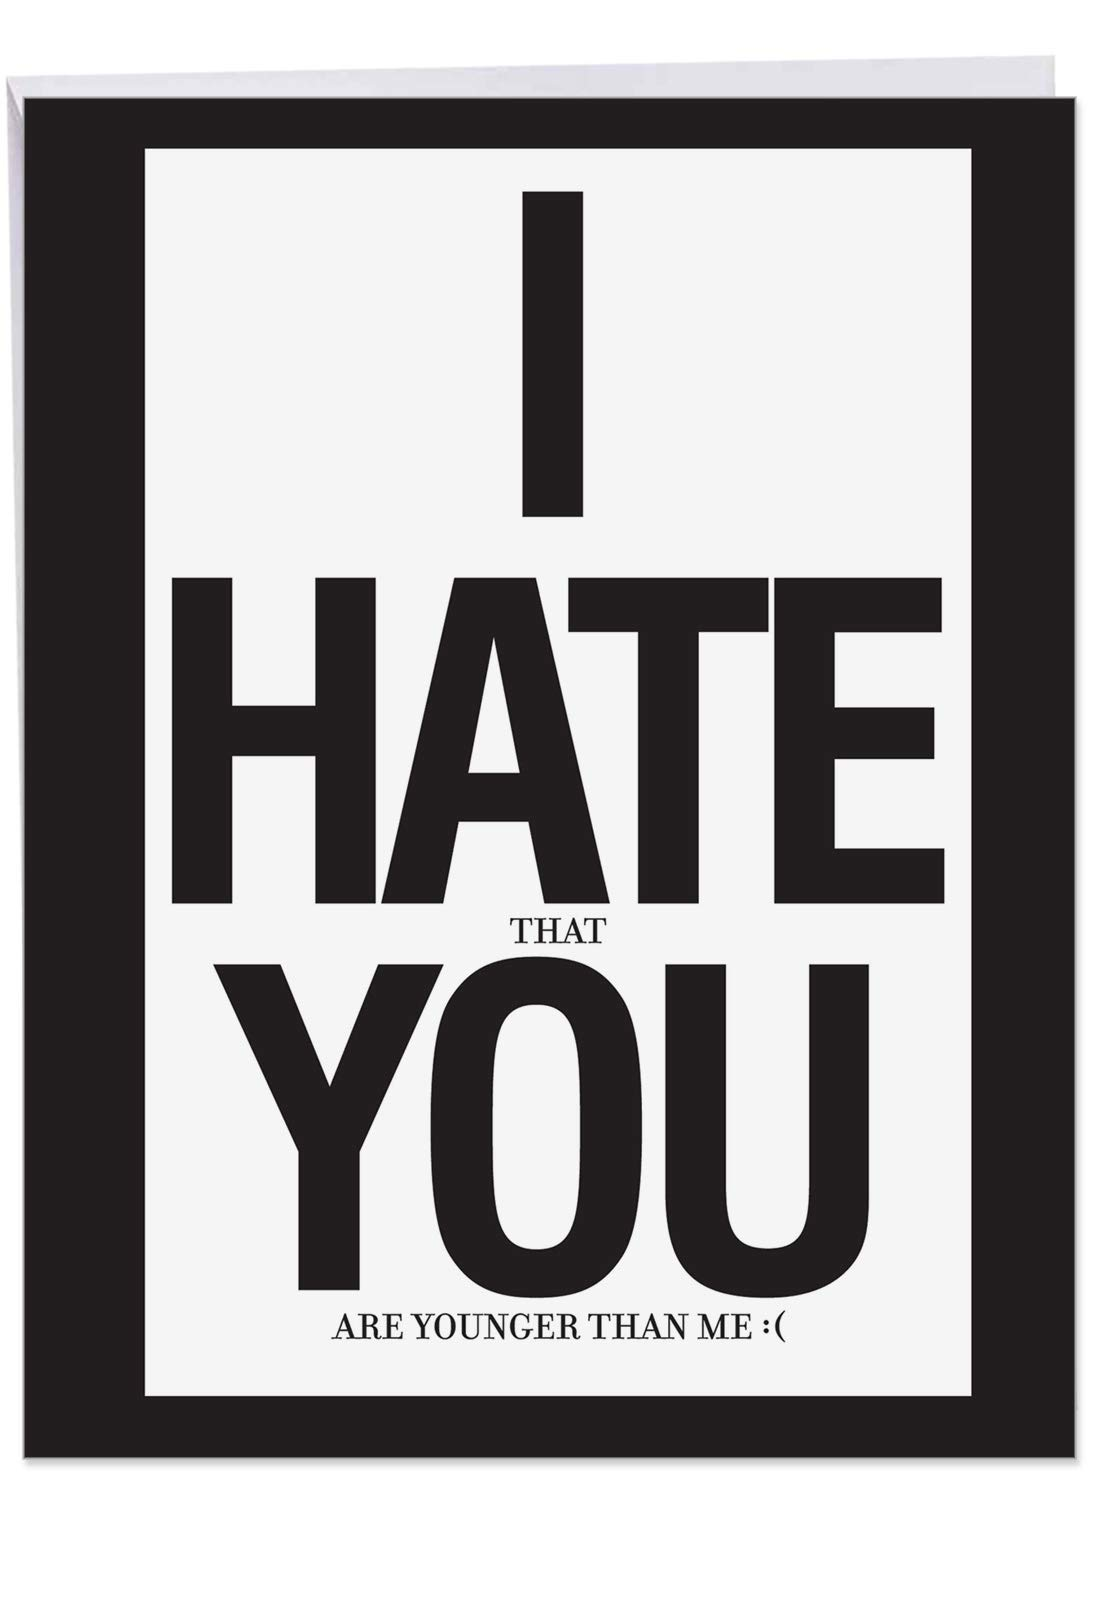 I Hate You Birthday Card' Big Bday Card with Envelope 8.5 x 11 Inch - Black and White Color Large Font, Hate That You Are Younger Than Me Stationery Set for Personalized Greetings and Wish J8671